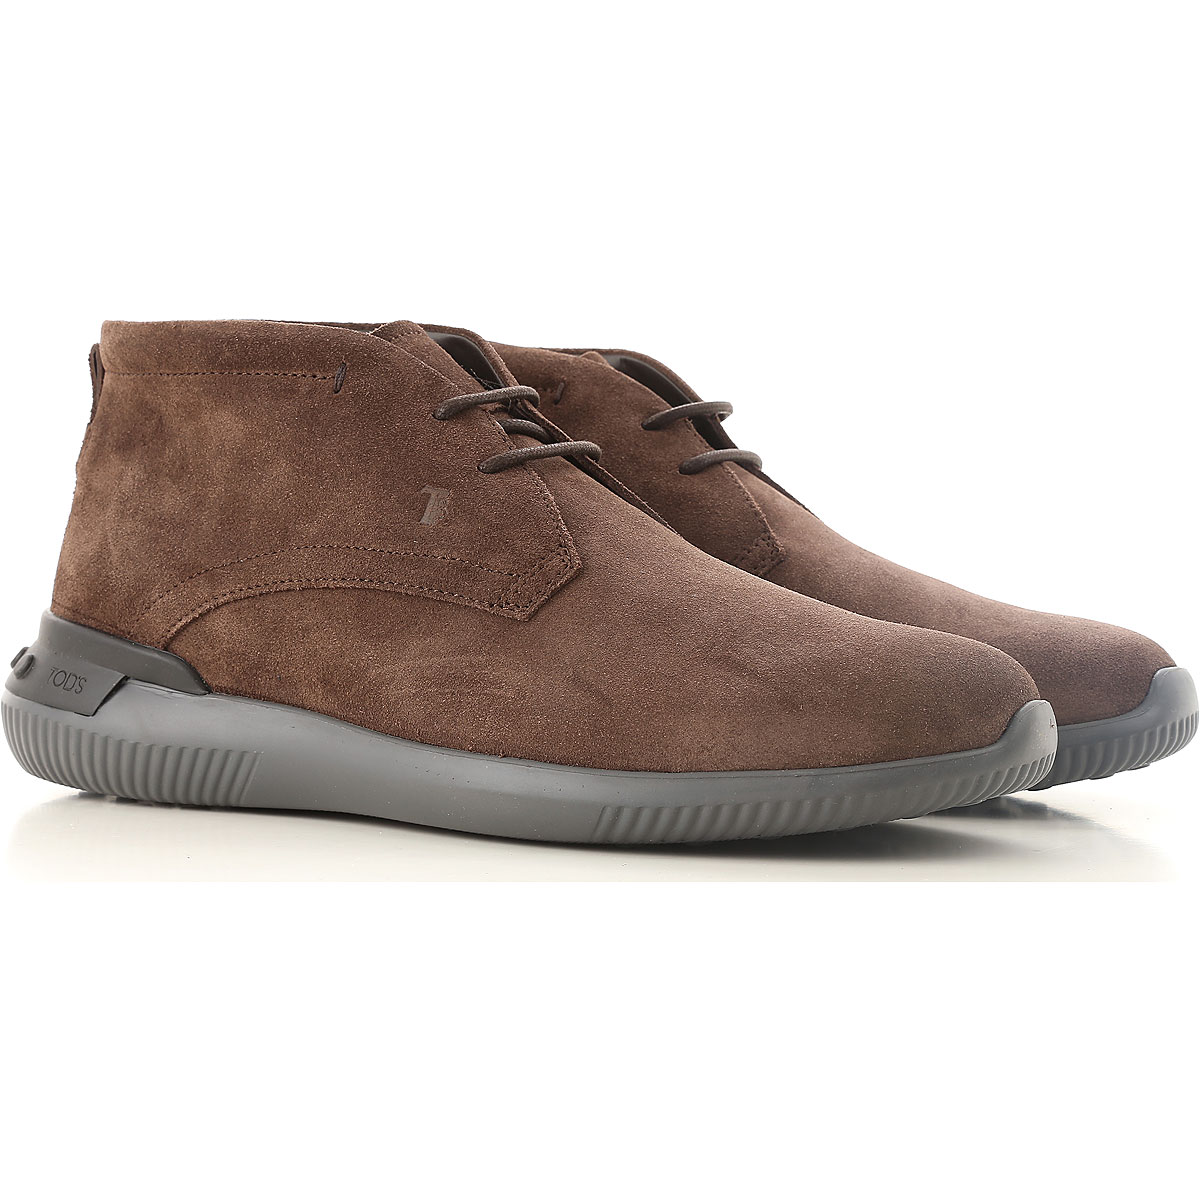 Tods Boots for Men, Booties On Sale in Outlet, Brown, Suede leather, 2019, 11 7.5